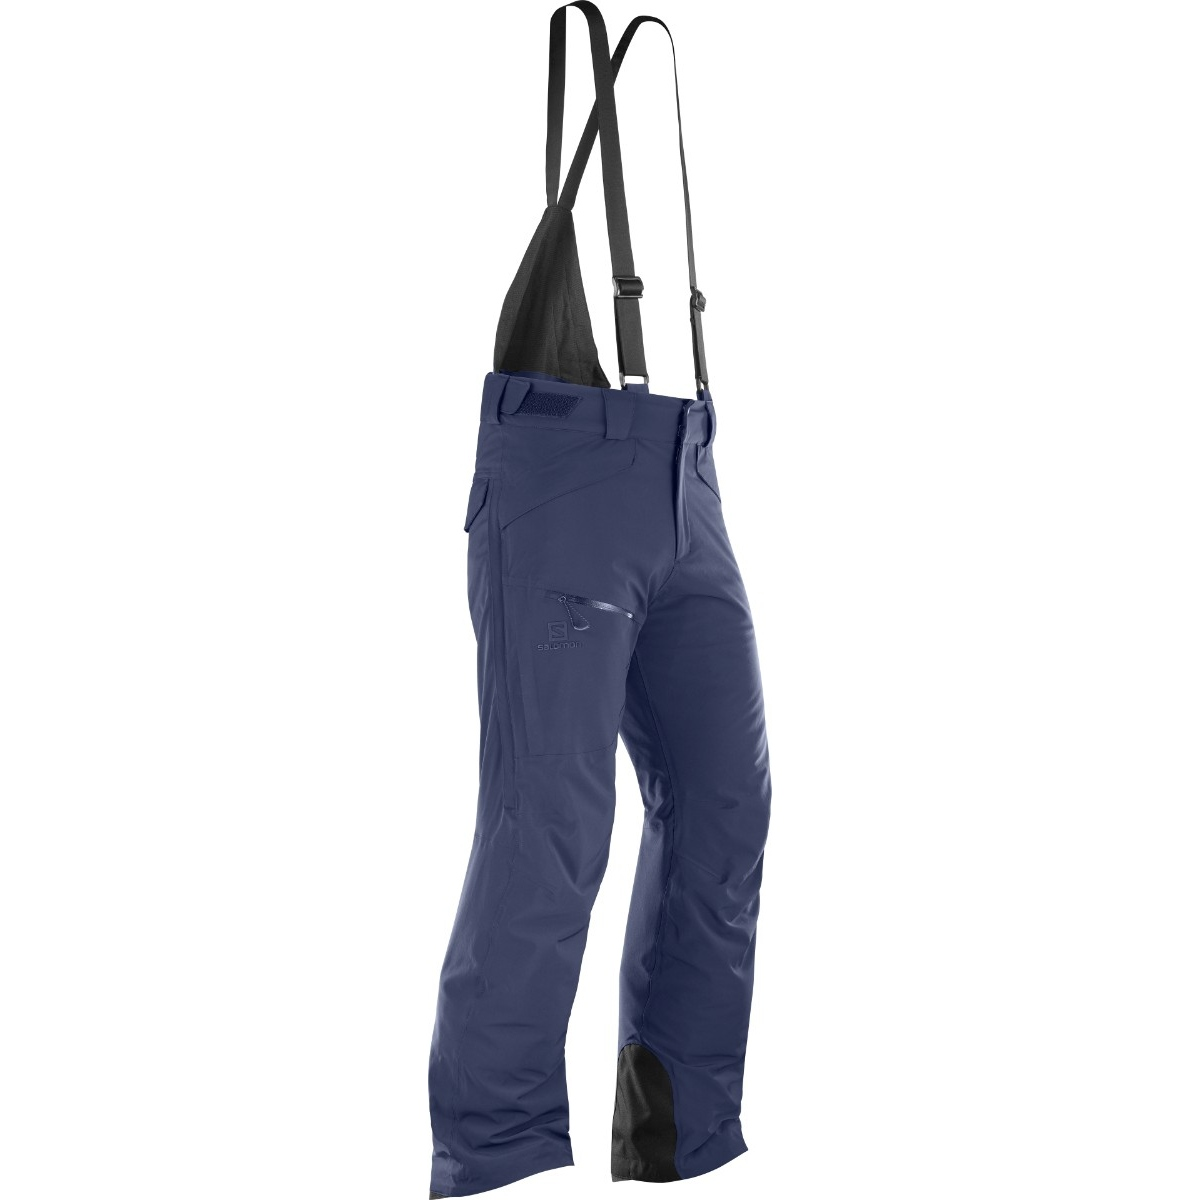 Pantaloni de ski Salomon CHILL OUT BIB - Bleu